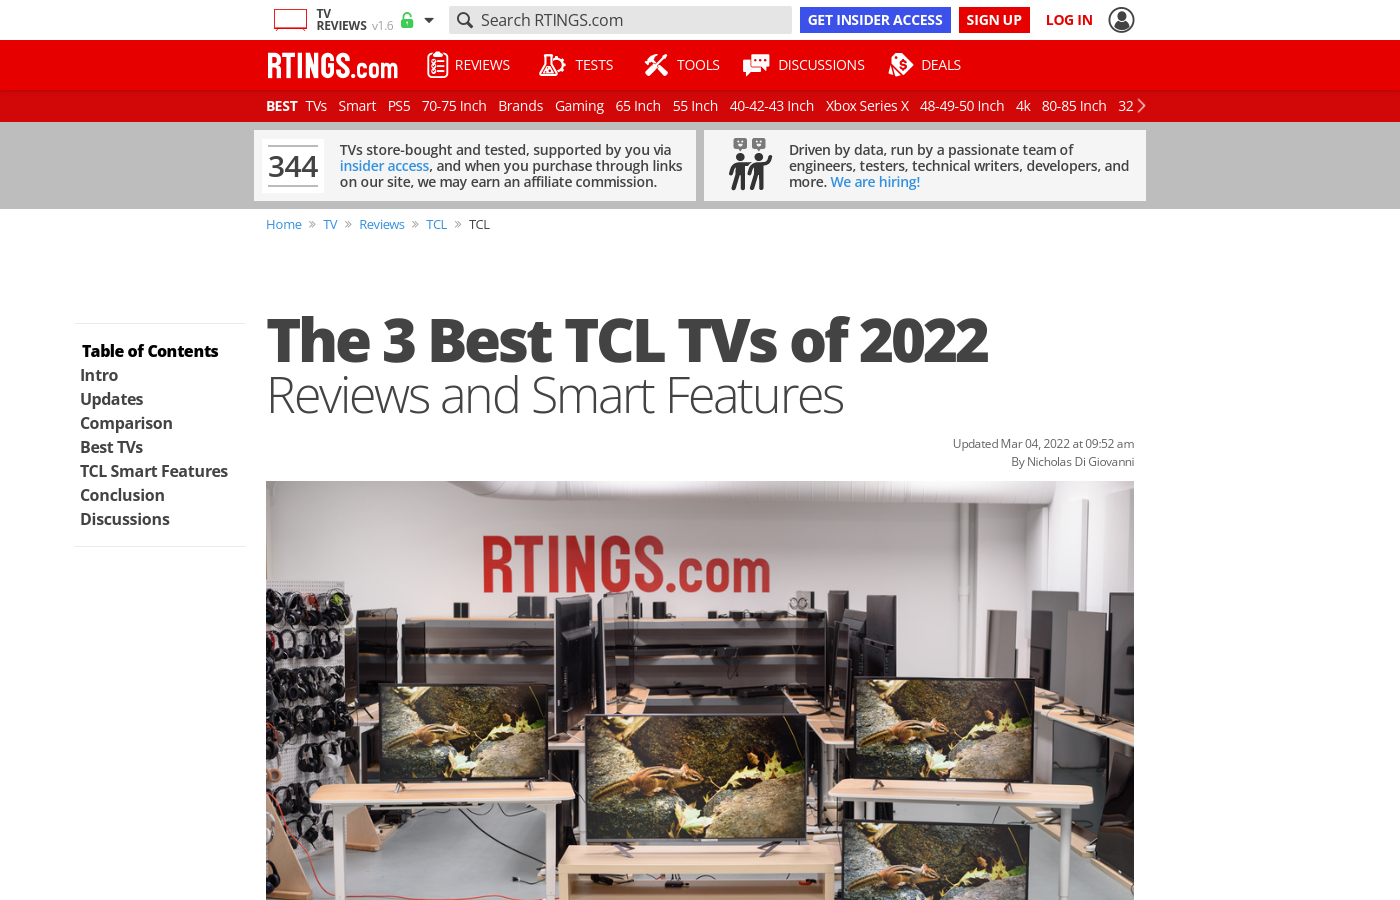 The Best TCL TVs of 2019: Reviews and Smart Features - RTINGS com